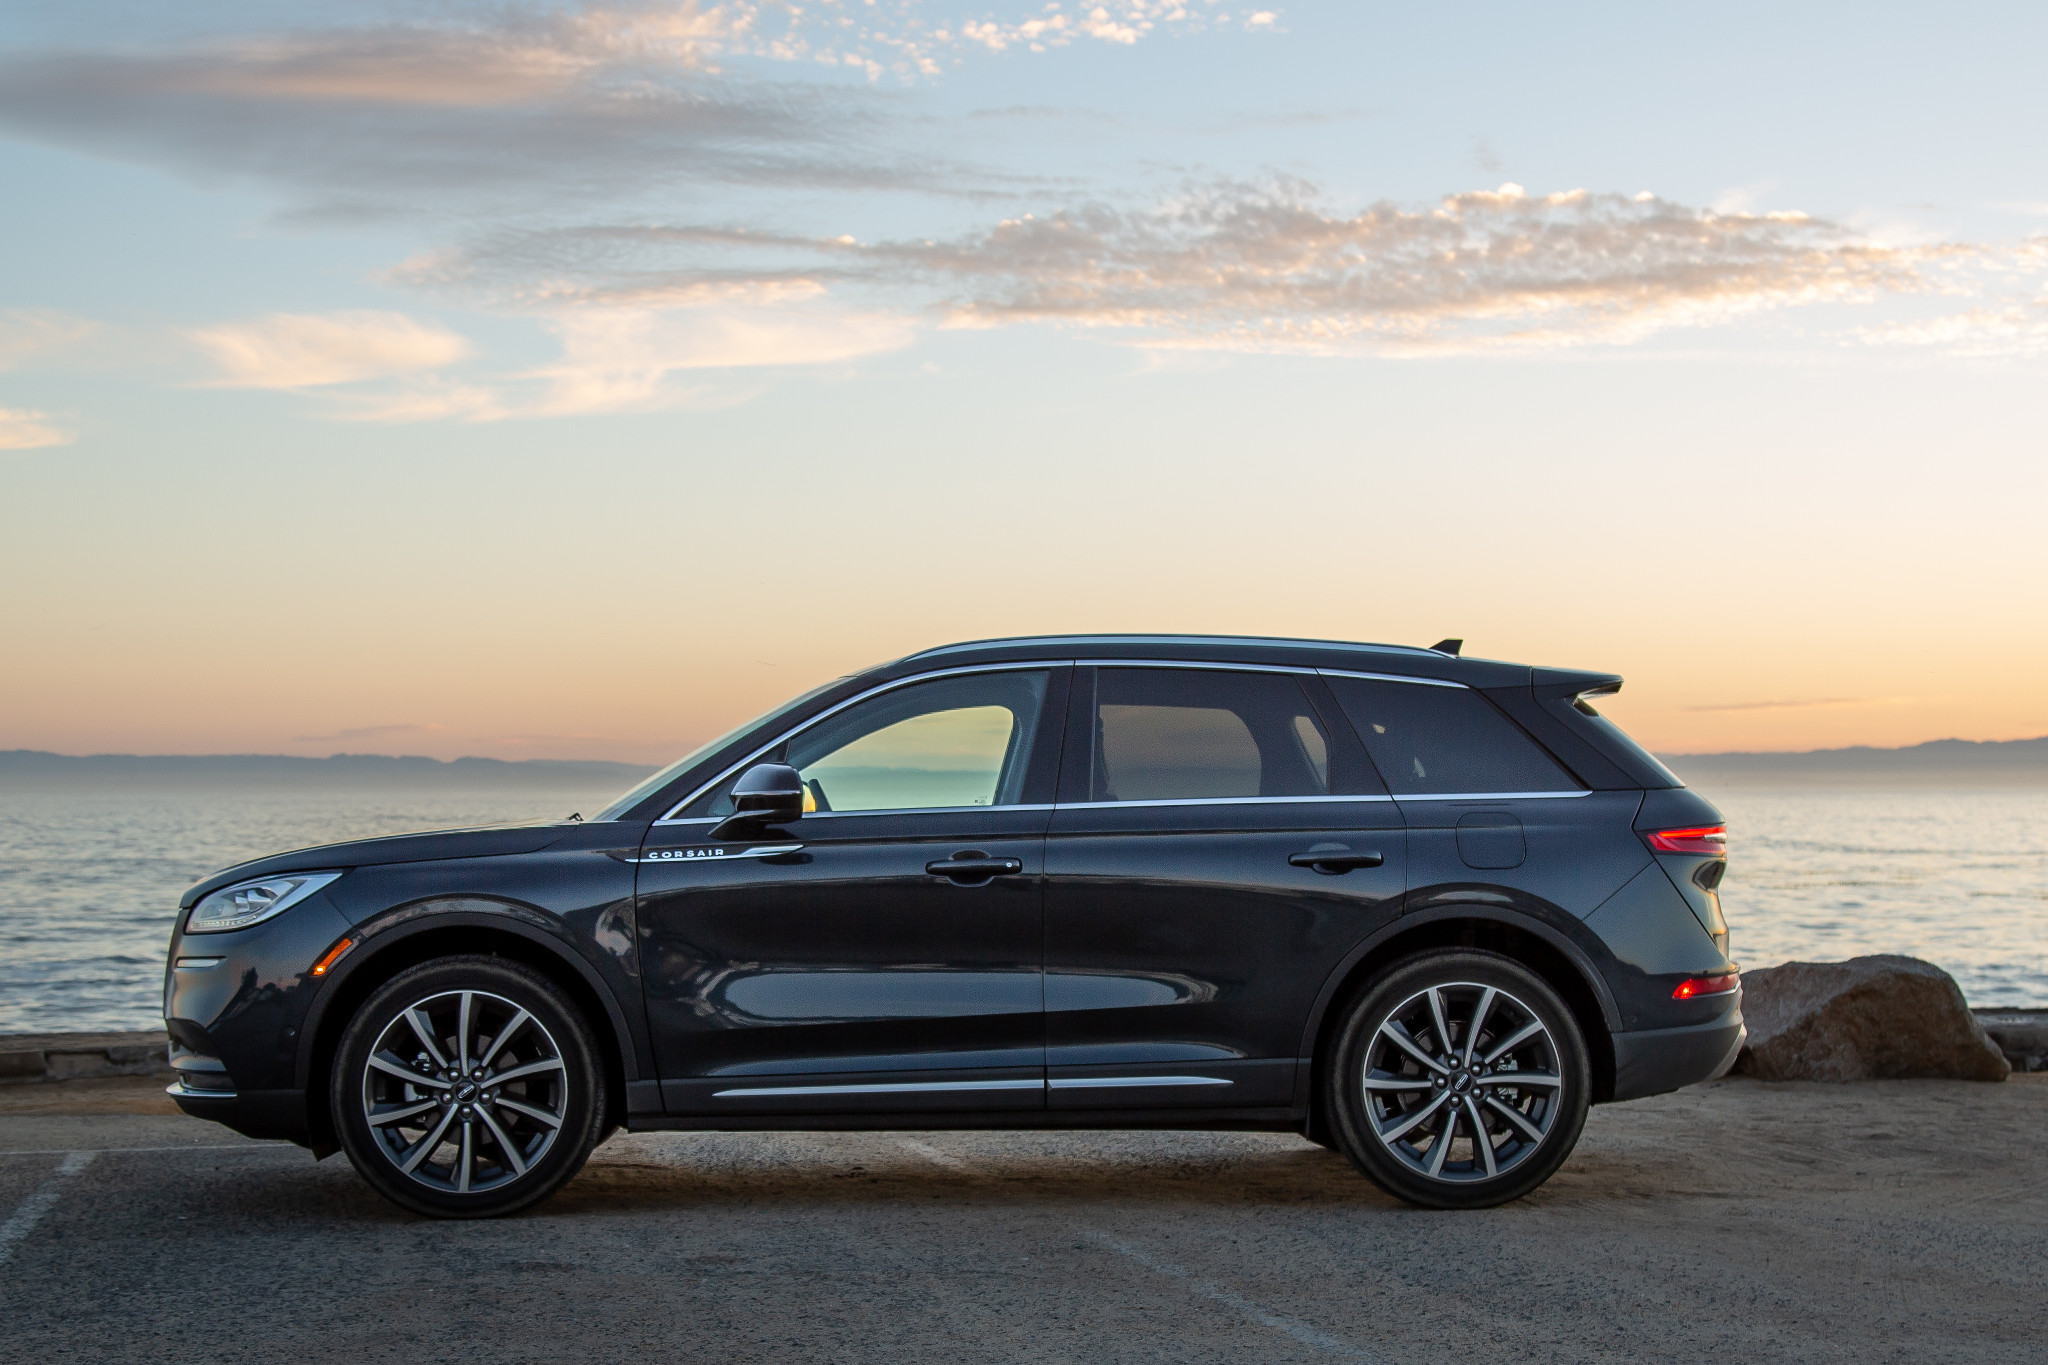 Top 5 Reviews and Videos of the Week: Lincoln Corsair Can't Sail Past Subaru Outback